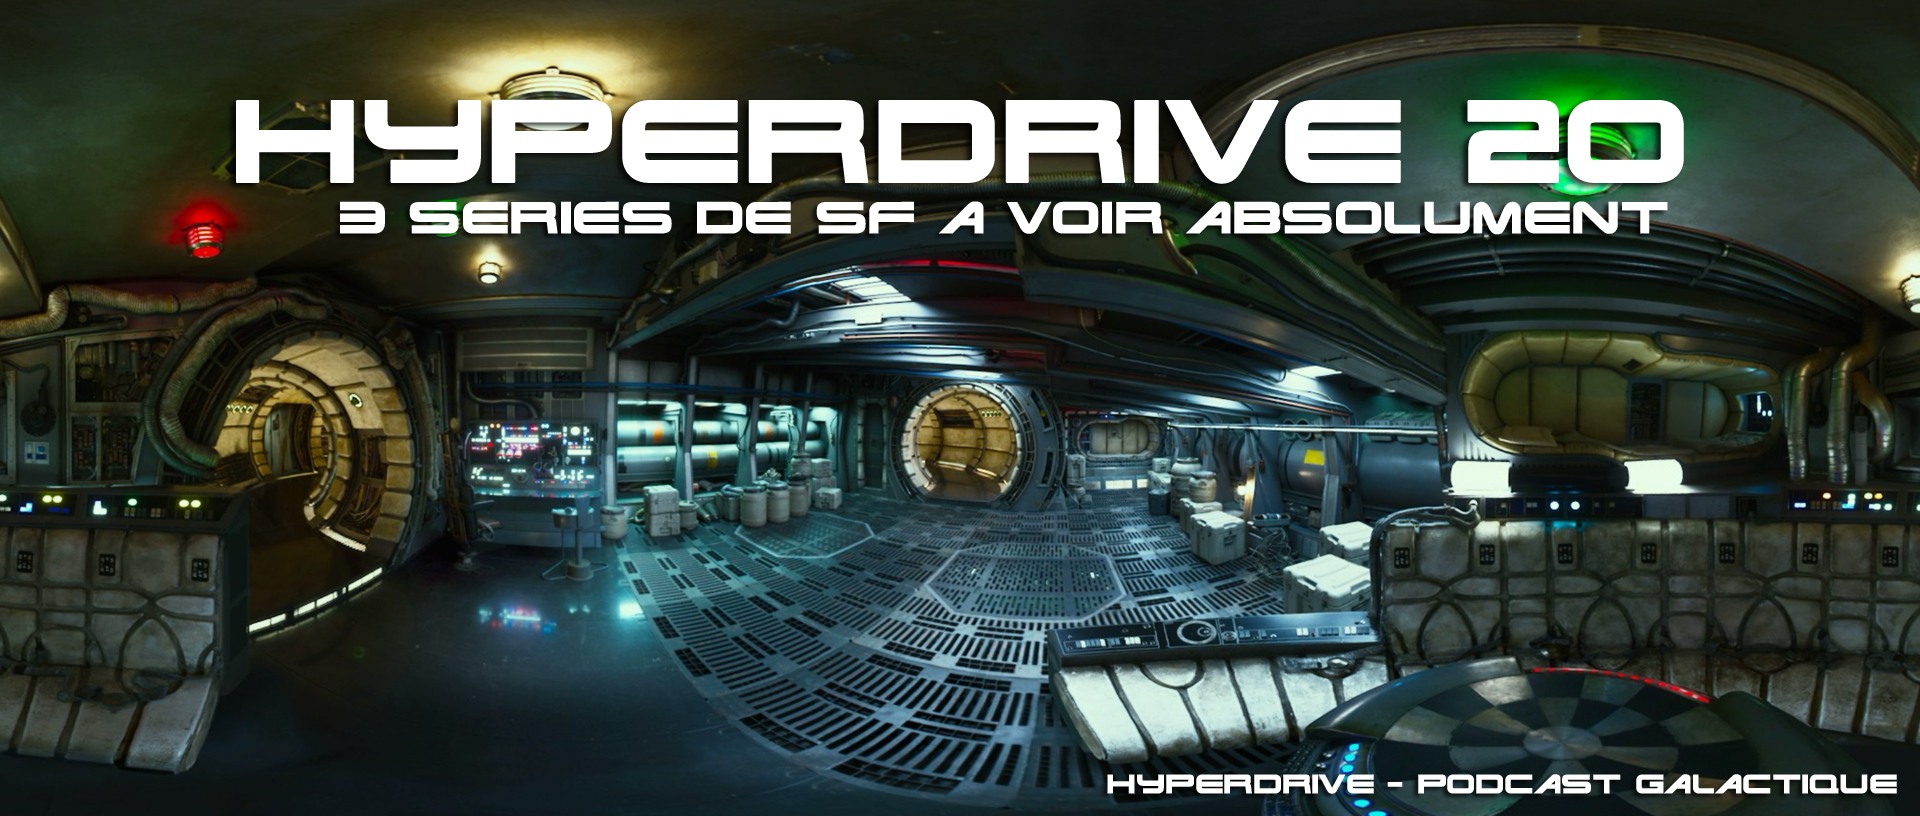 podcast hyperdrive 20 - 3 séries de SF à (re)voir